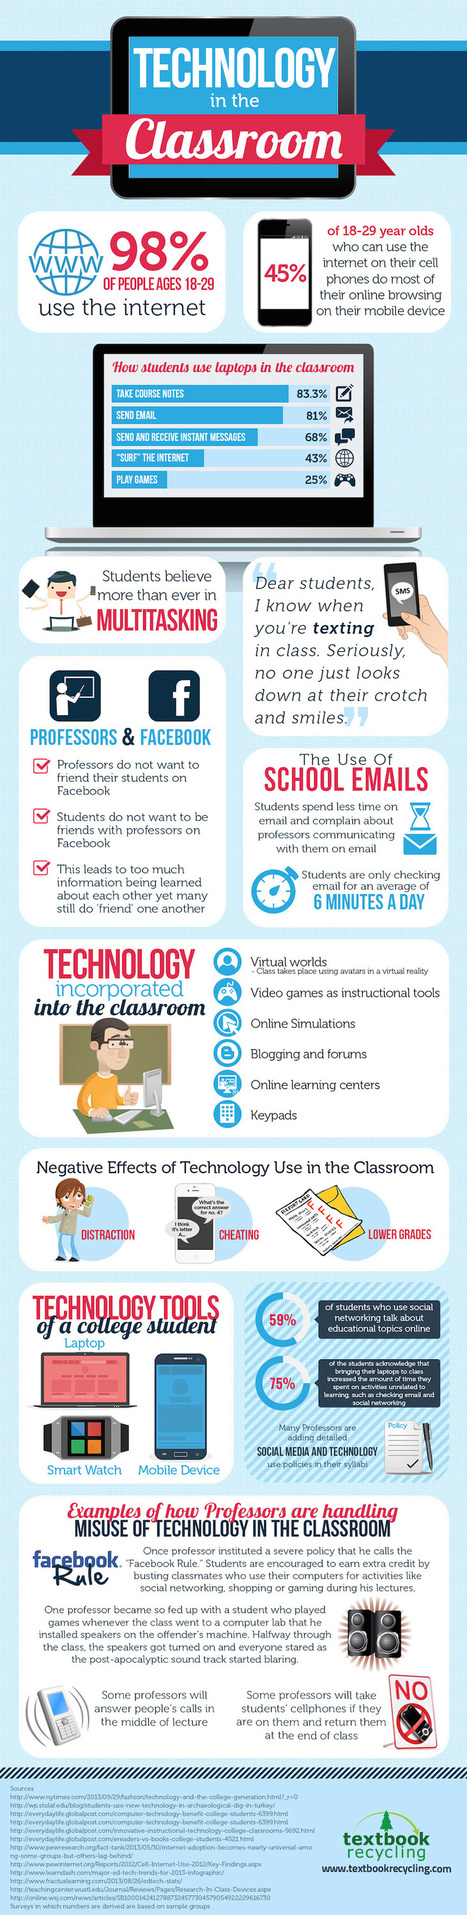 Ed Tech In The College Classroom | Technology Resources for Education | Scoop.it